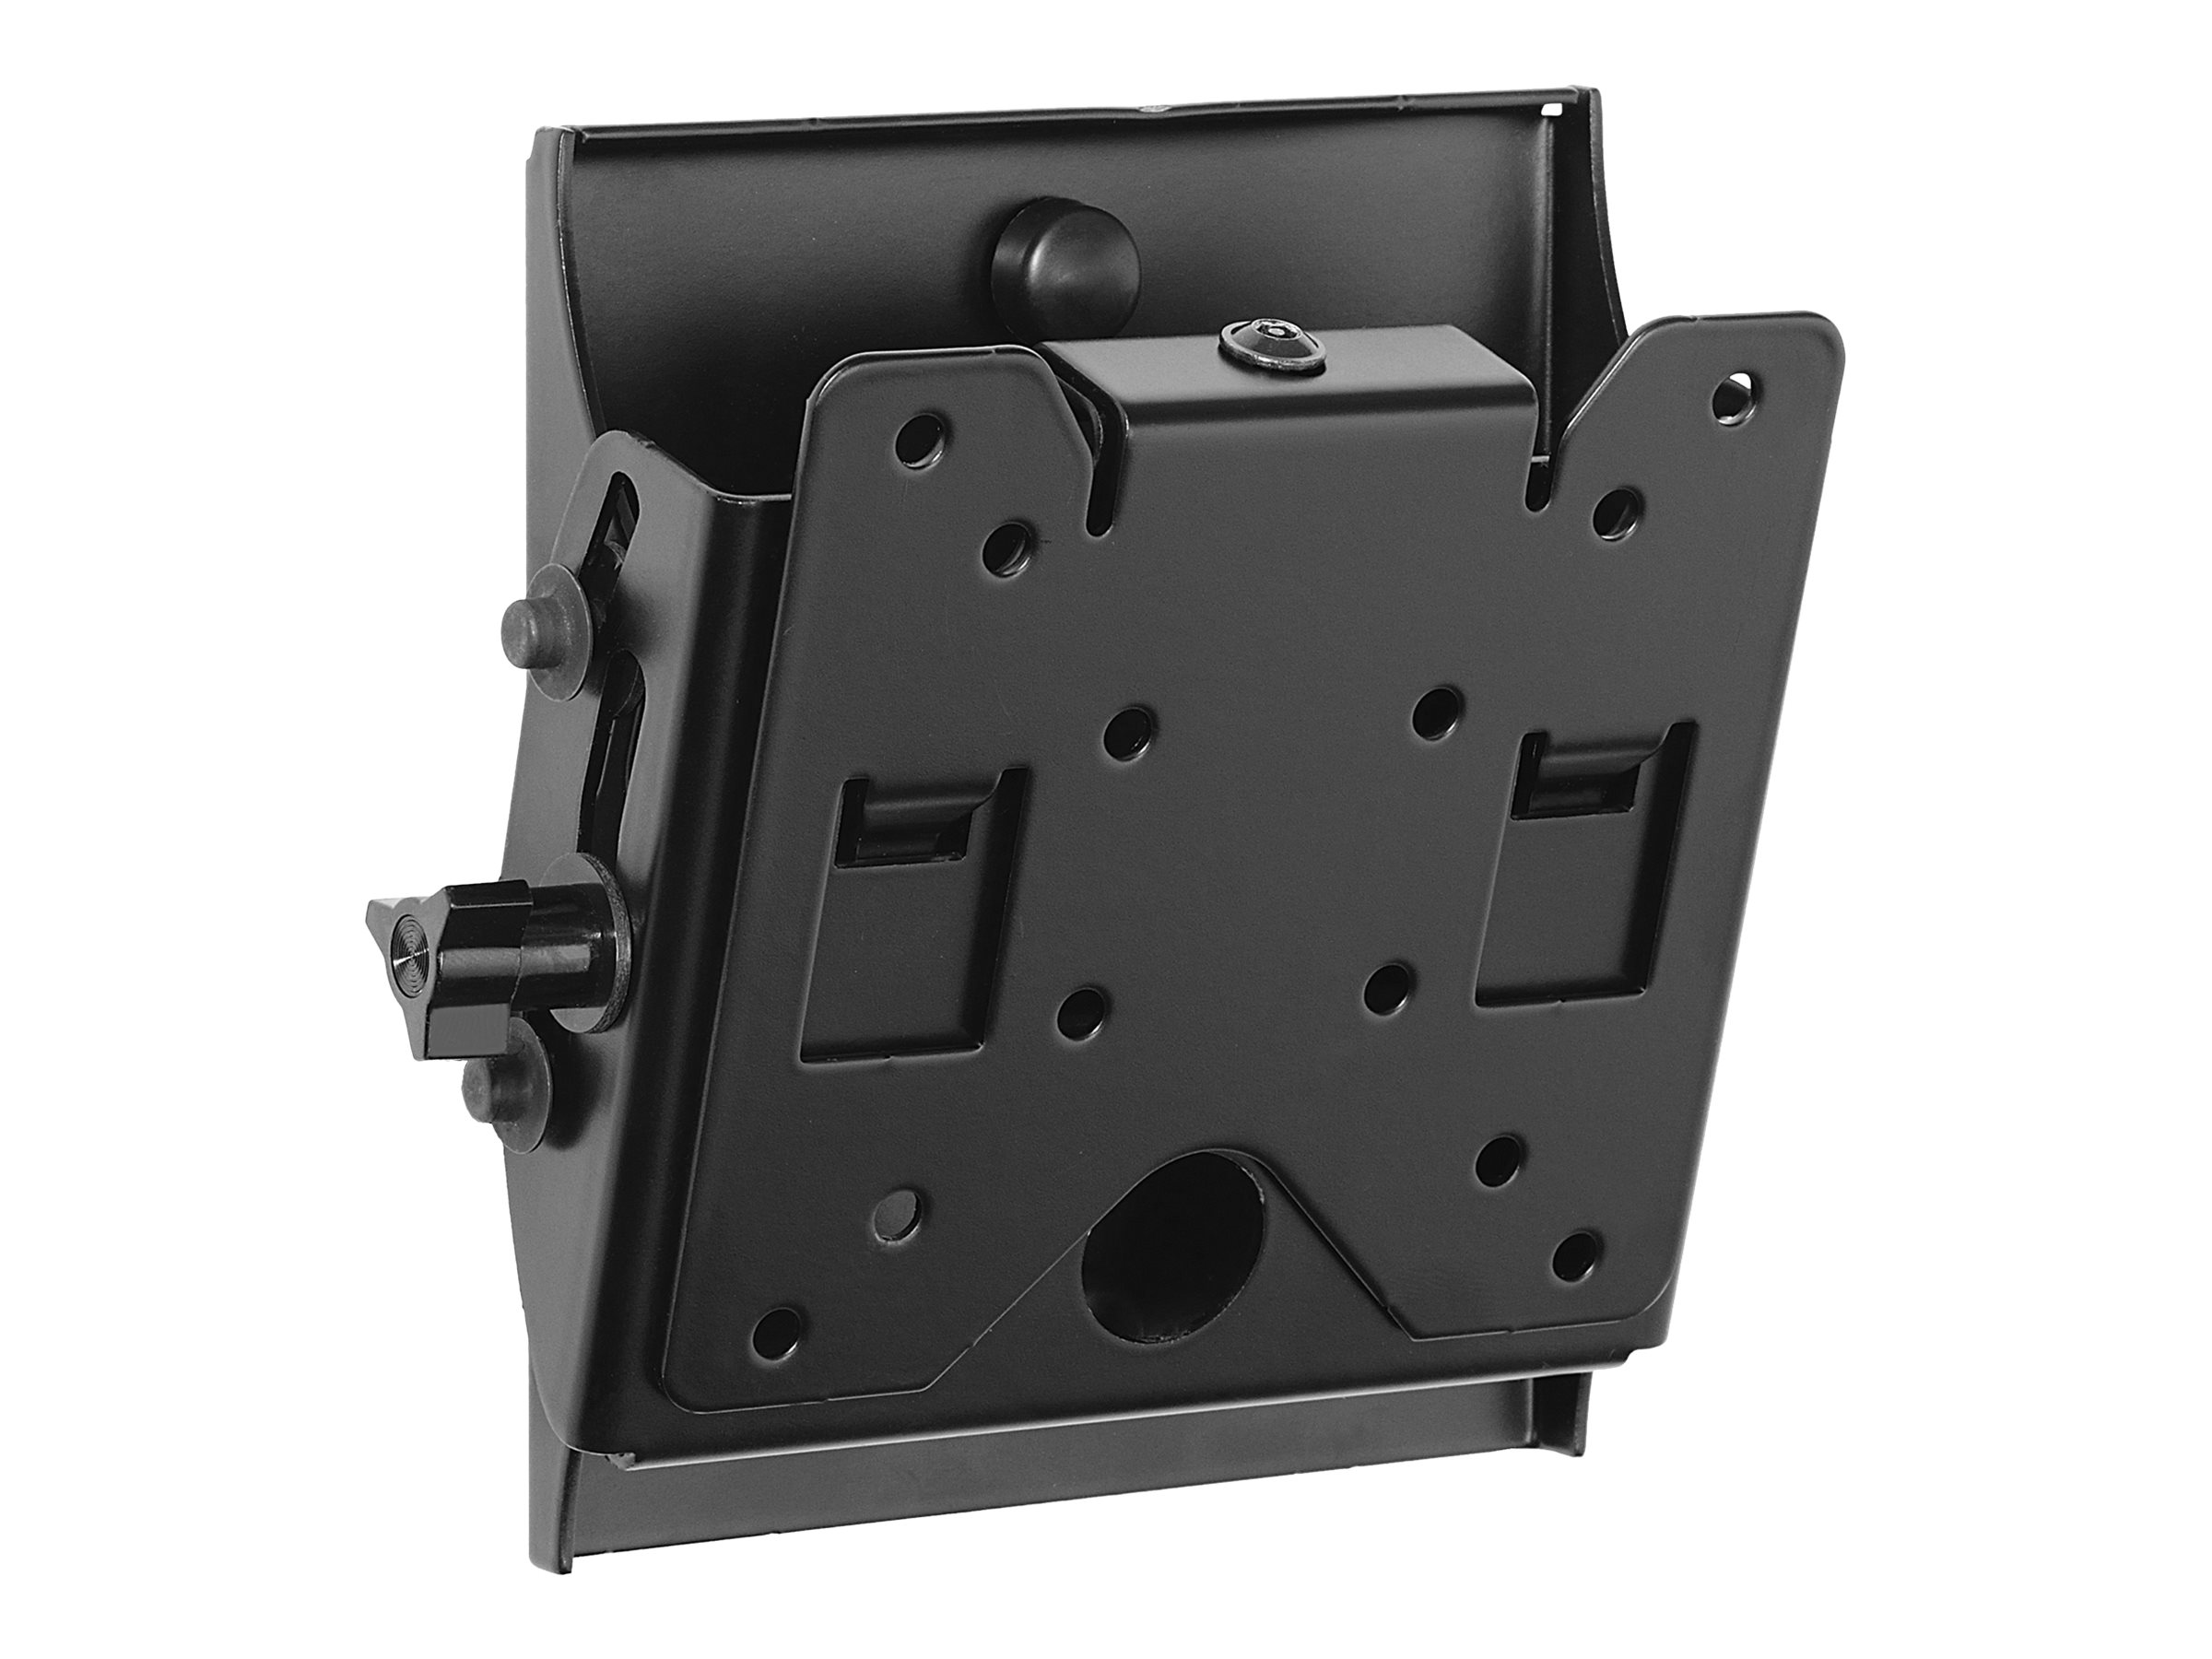 Peerless SmartMount Universal Tilt Wall Mount for 10-29 Displays, ST630P